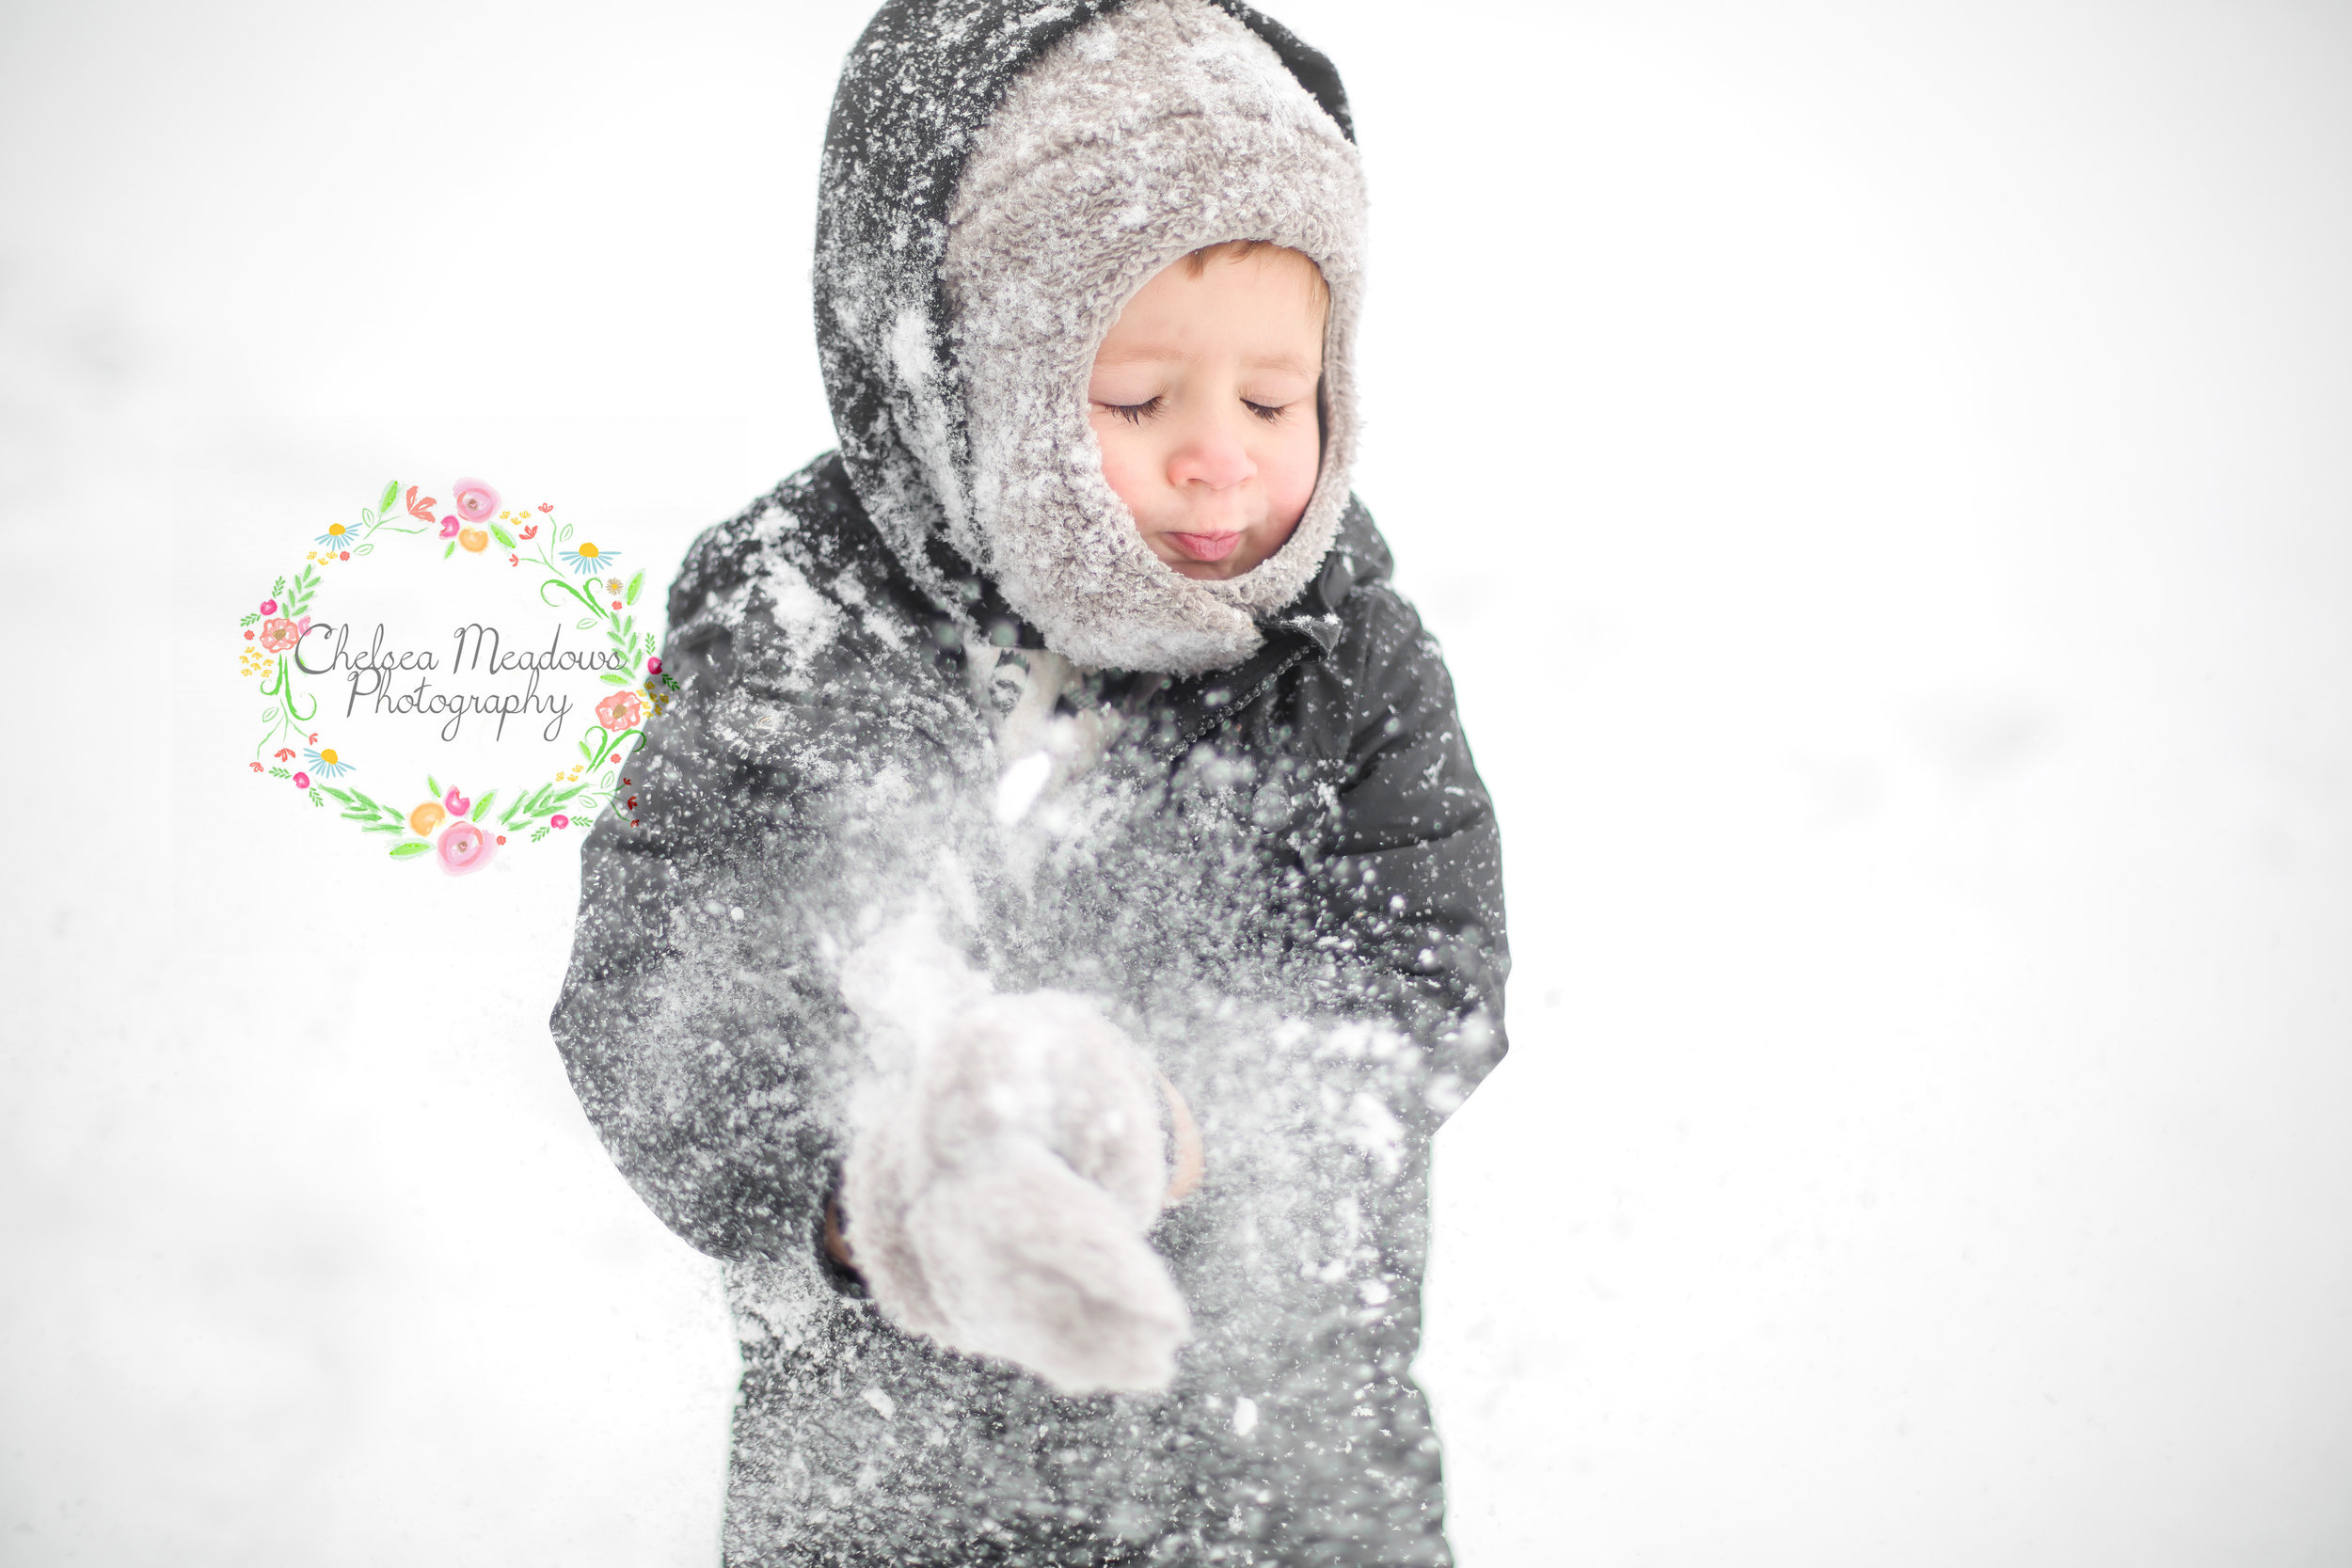 Ryder Snow Day 2018 - Nashville Family Photographer - Chelsea Meadows Photography (8).jpg